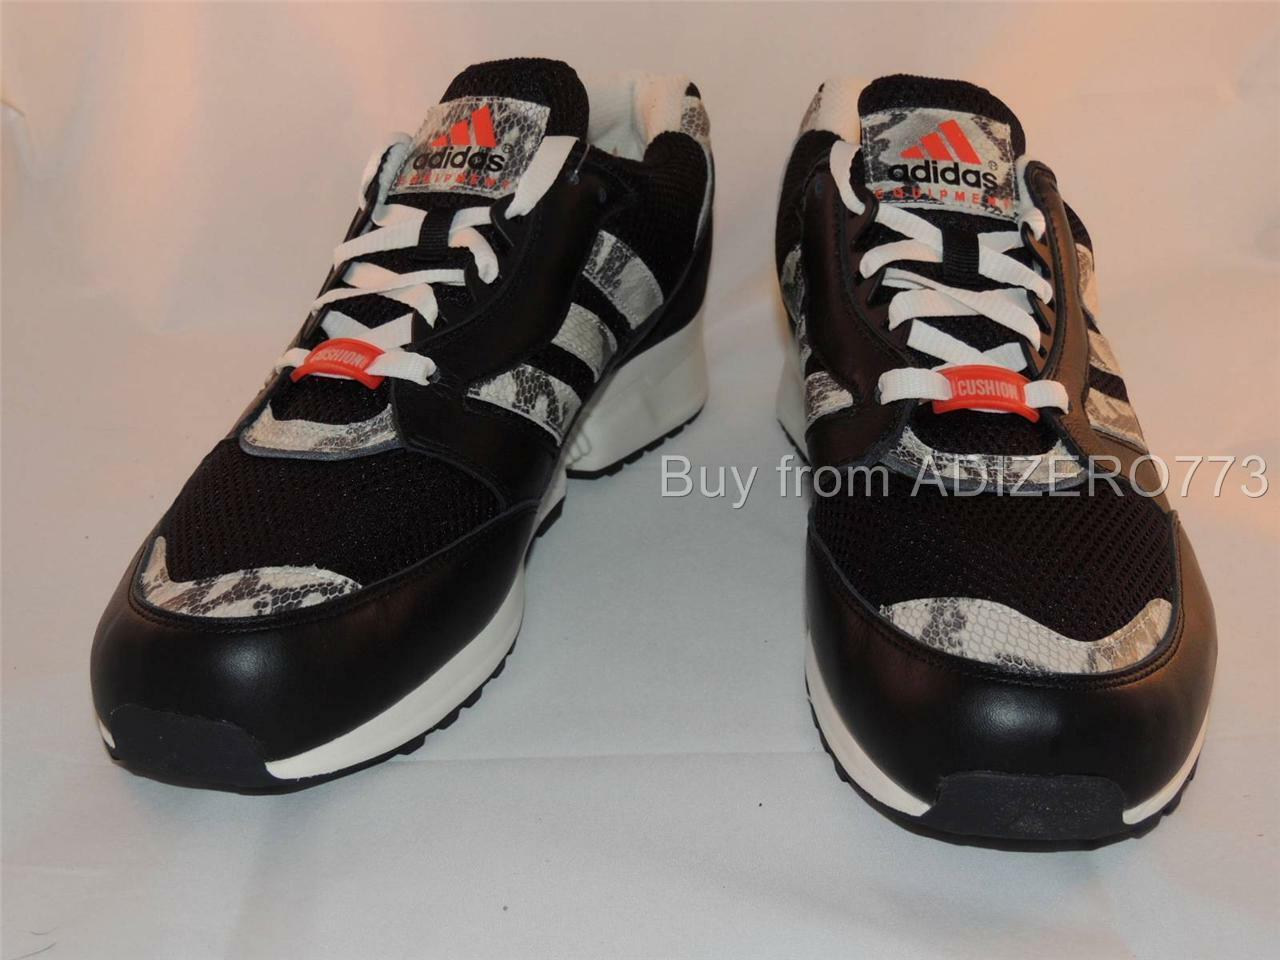 Adidas Equipment Running Support Snakeskin M25764 Black White Fauz Snakeskin Support Print e090b2